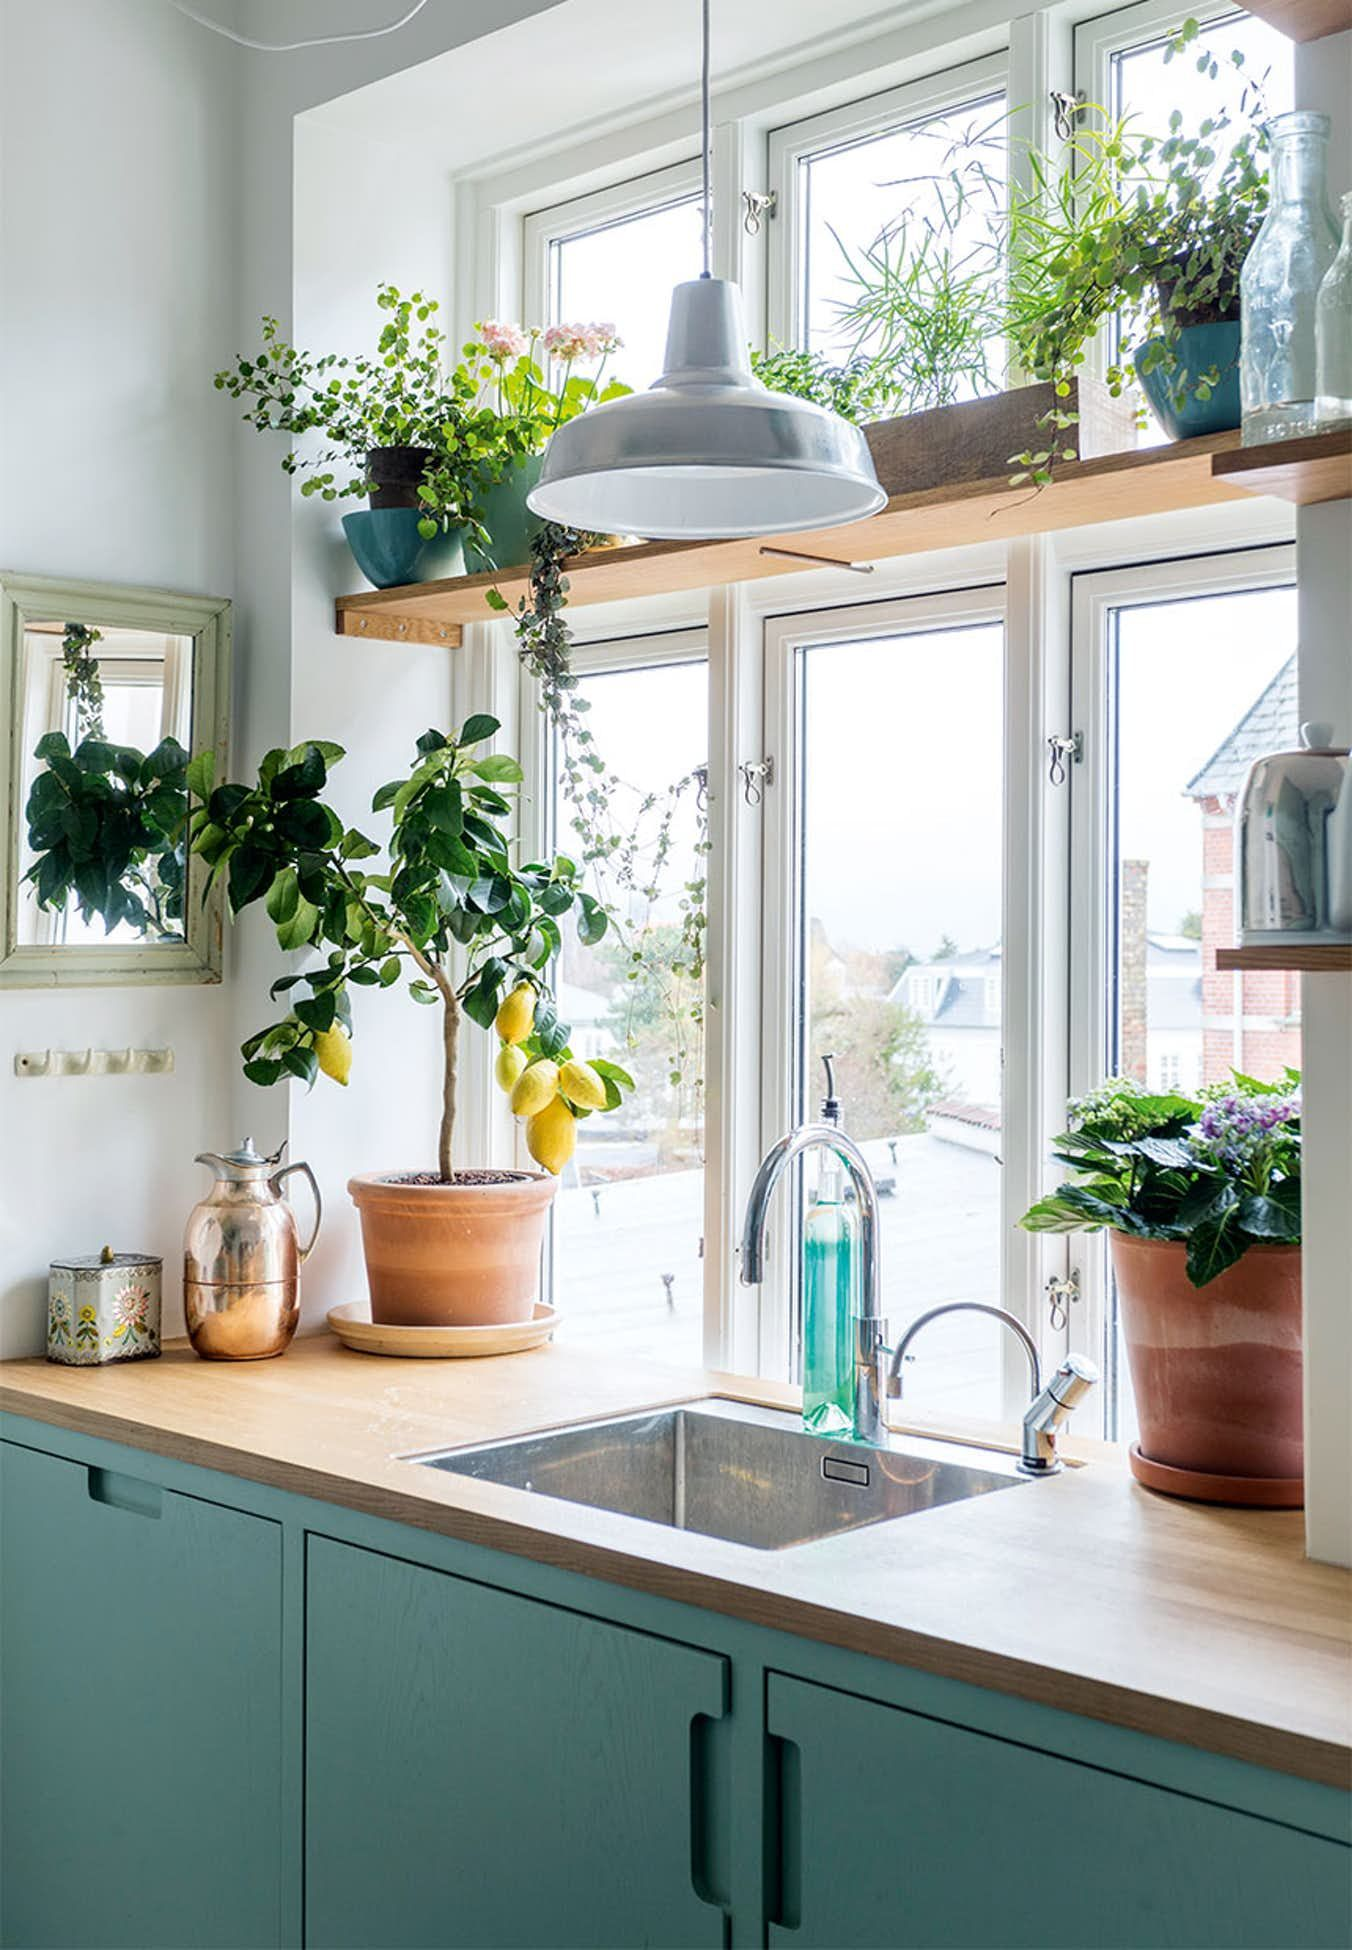 Love the colors of the cabinets and the tall windoes with the clerestory top, the wood counters and all the plants. I want this!